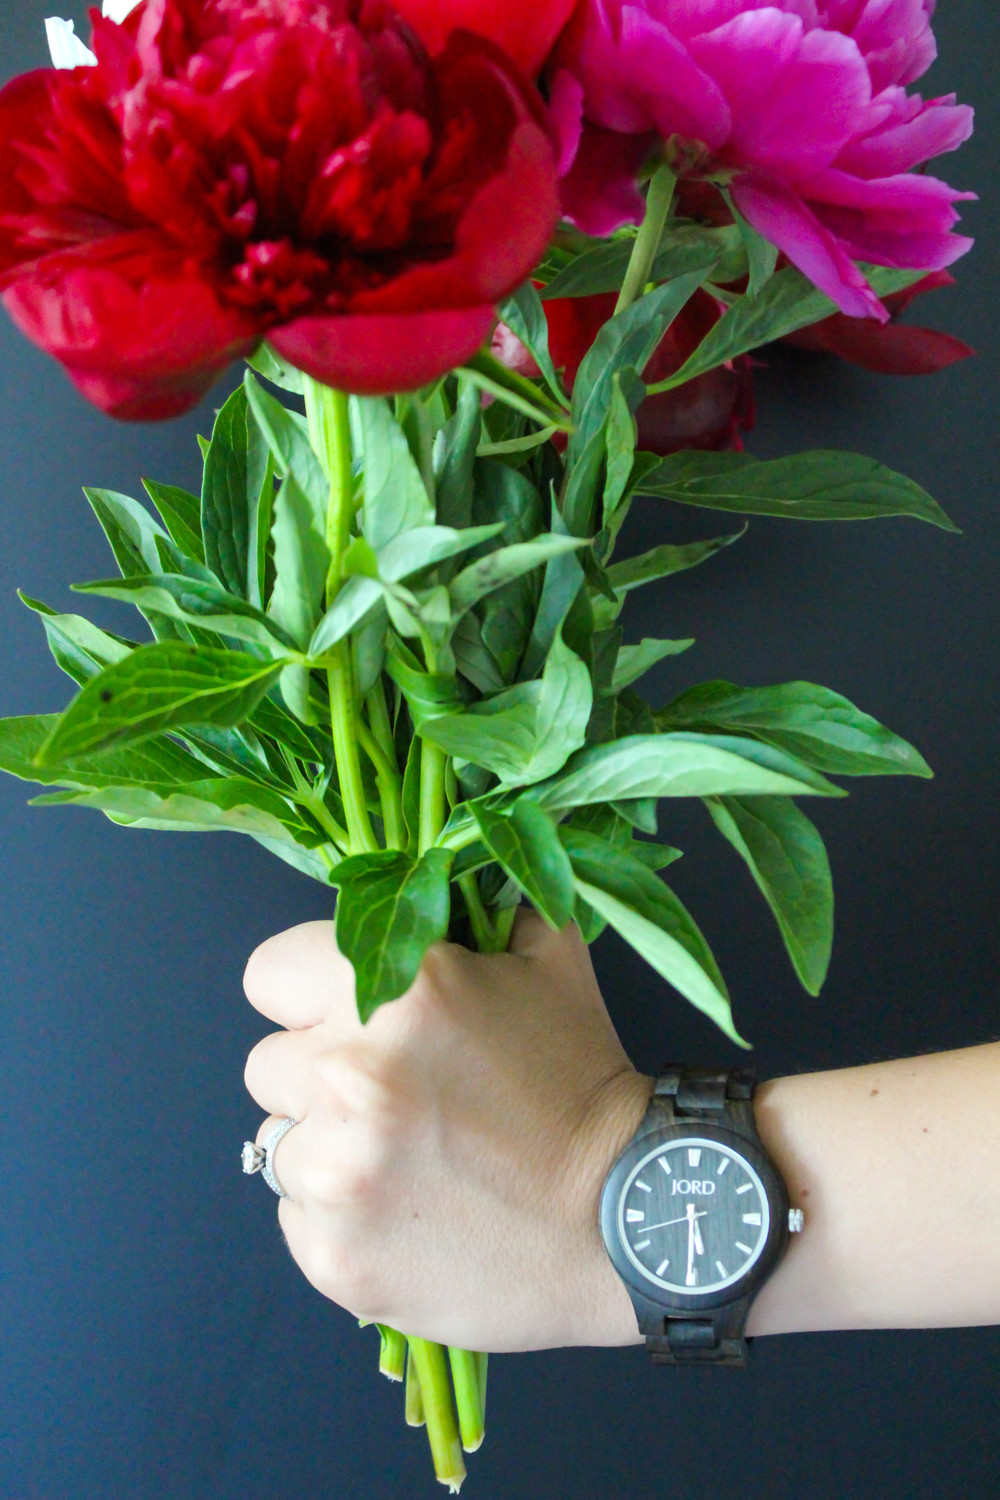 wood watch, ways to make time count in life, peonies time